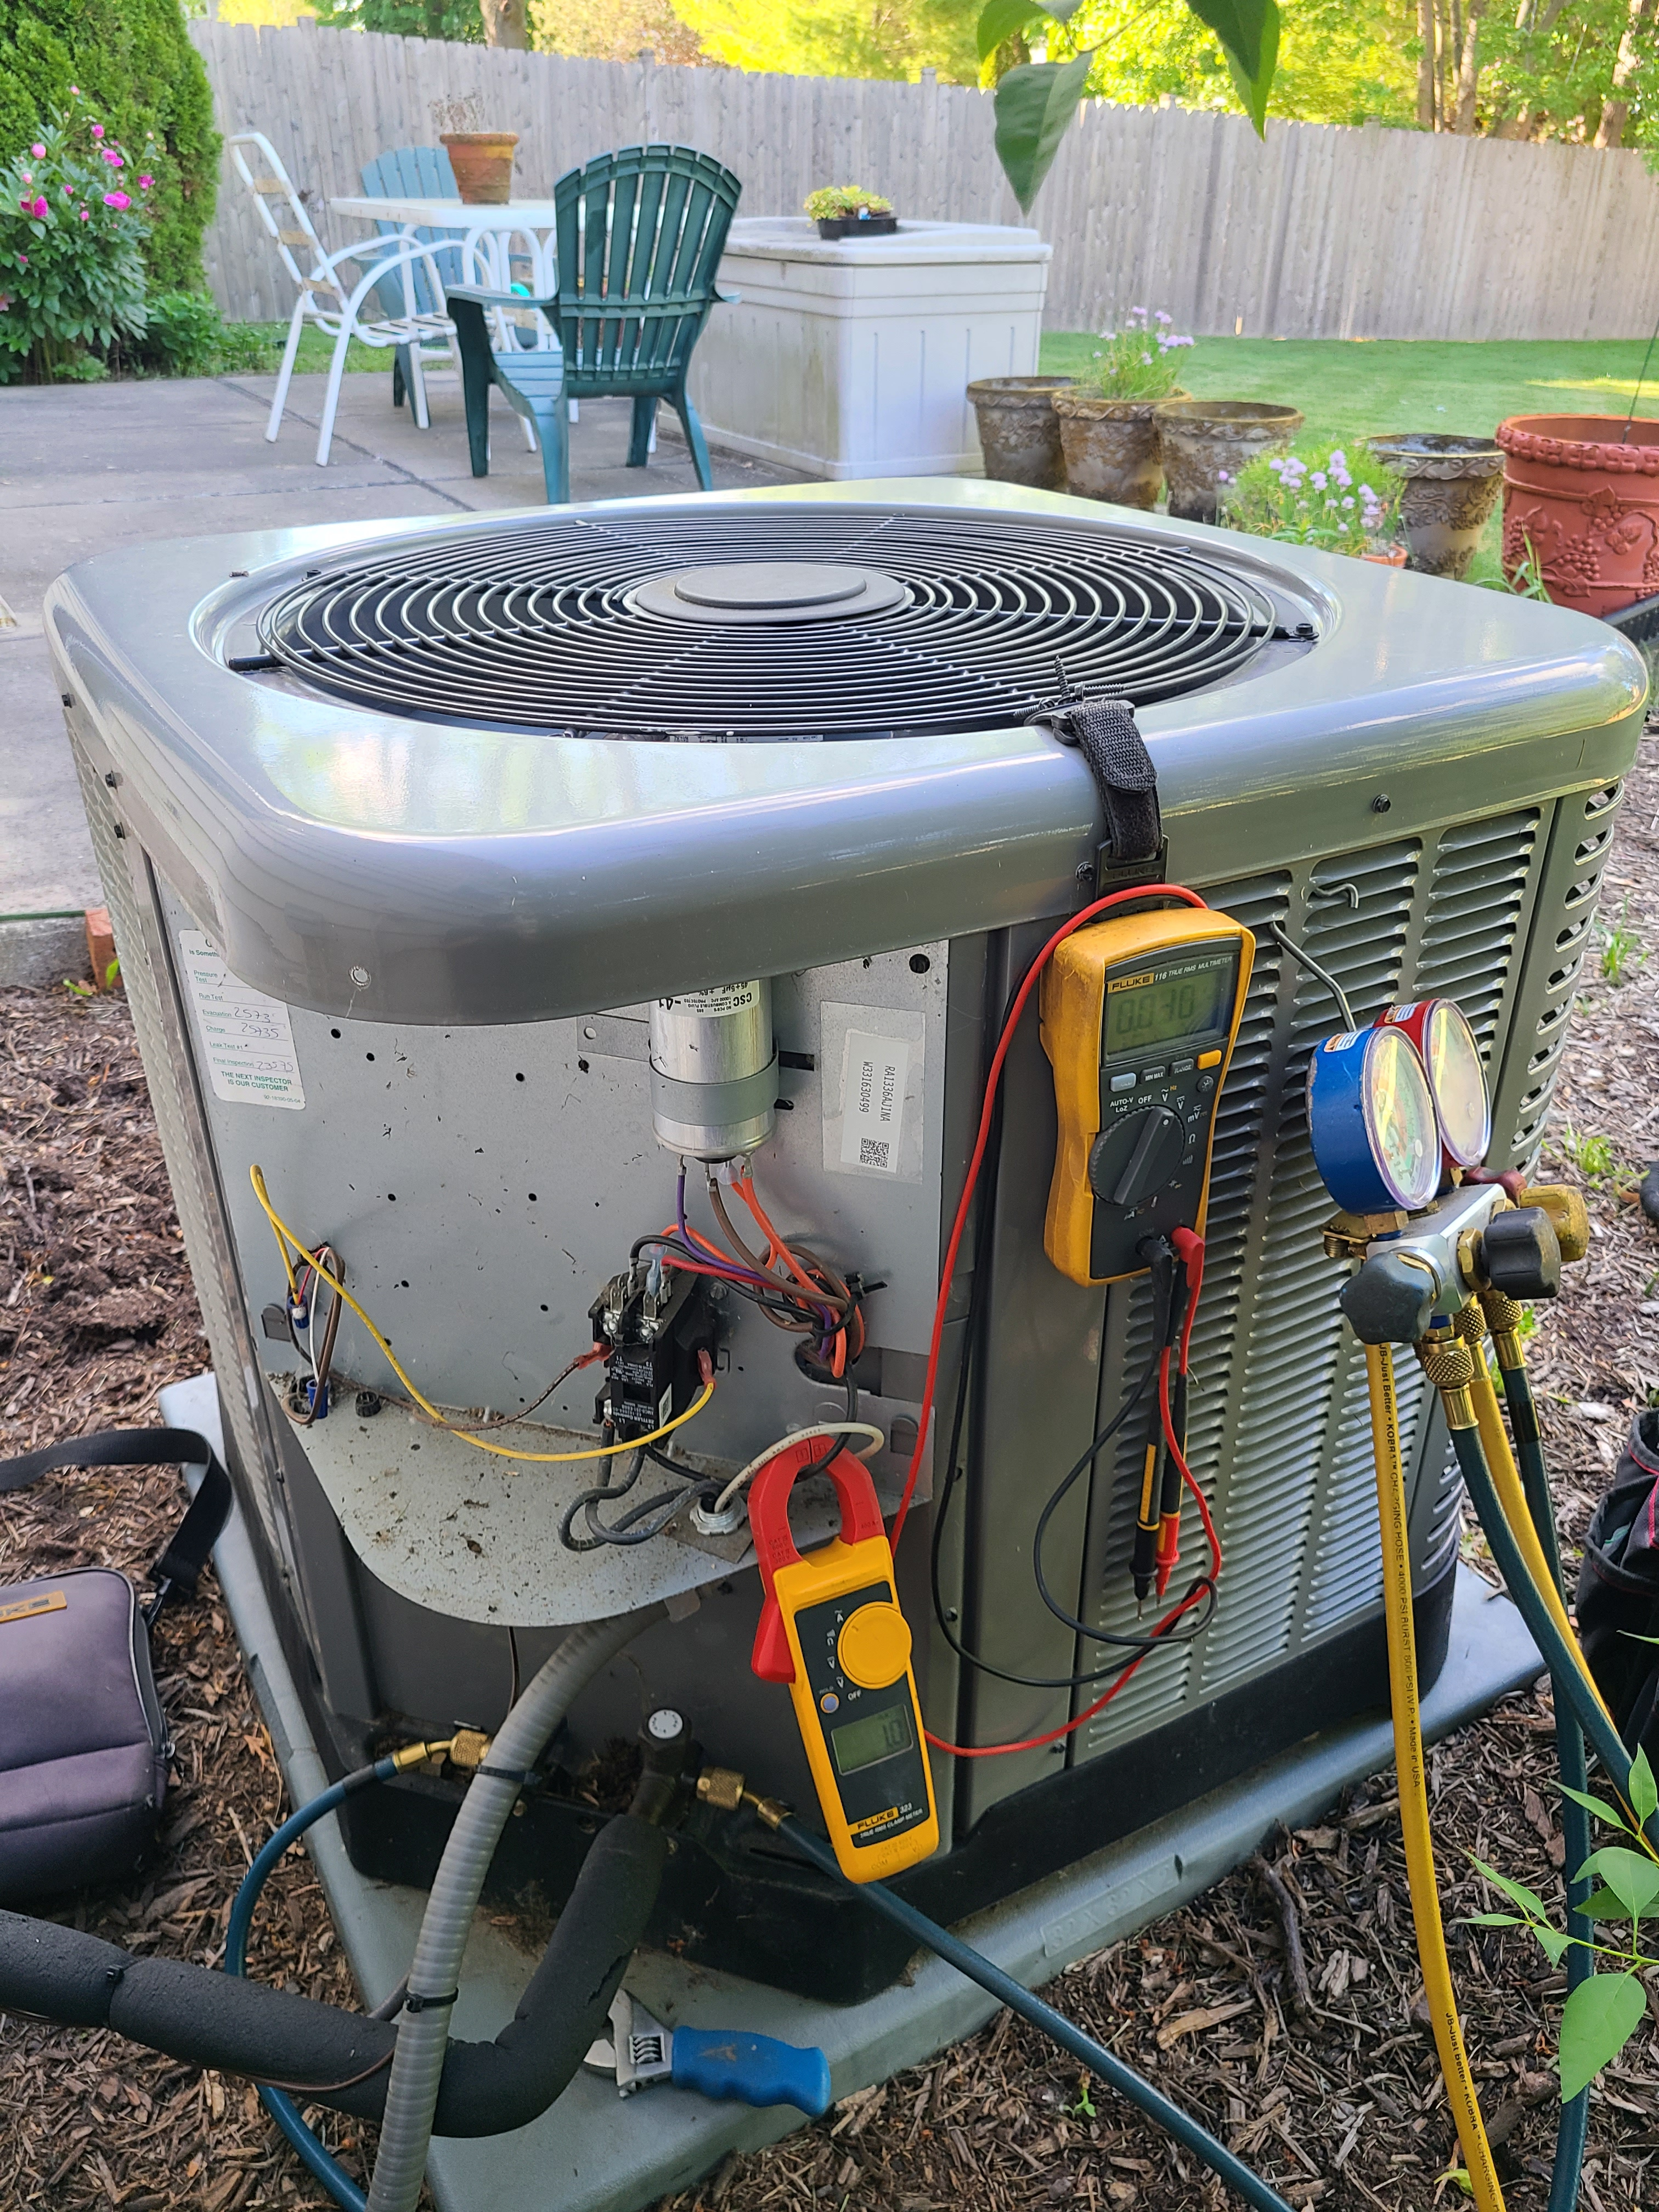 Ruud spring ac tune up. System cleaned and checked and ready for summer.